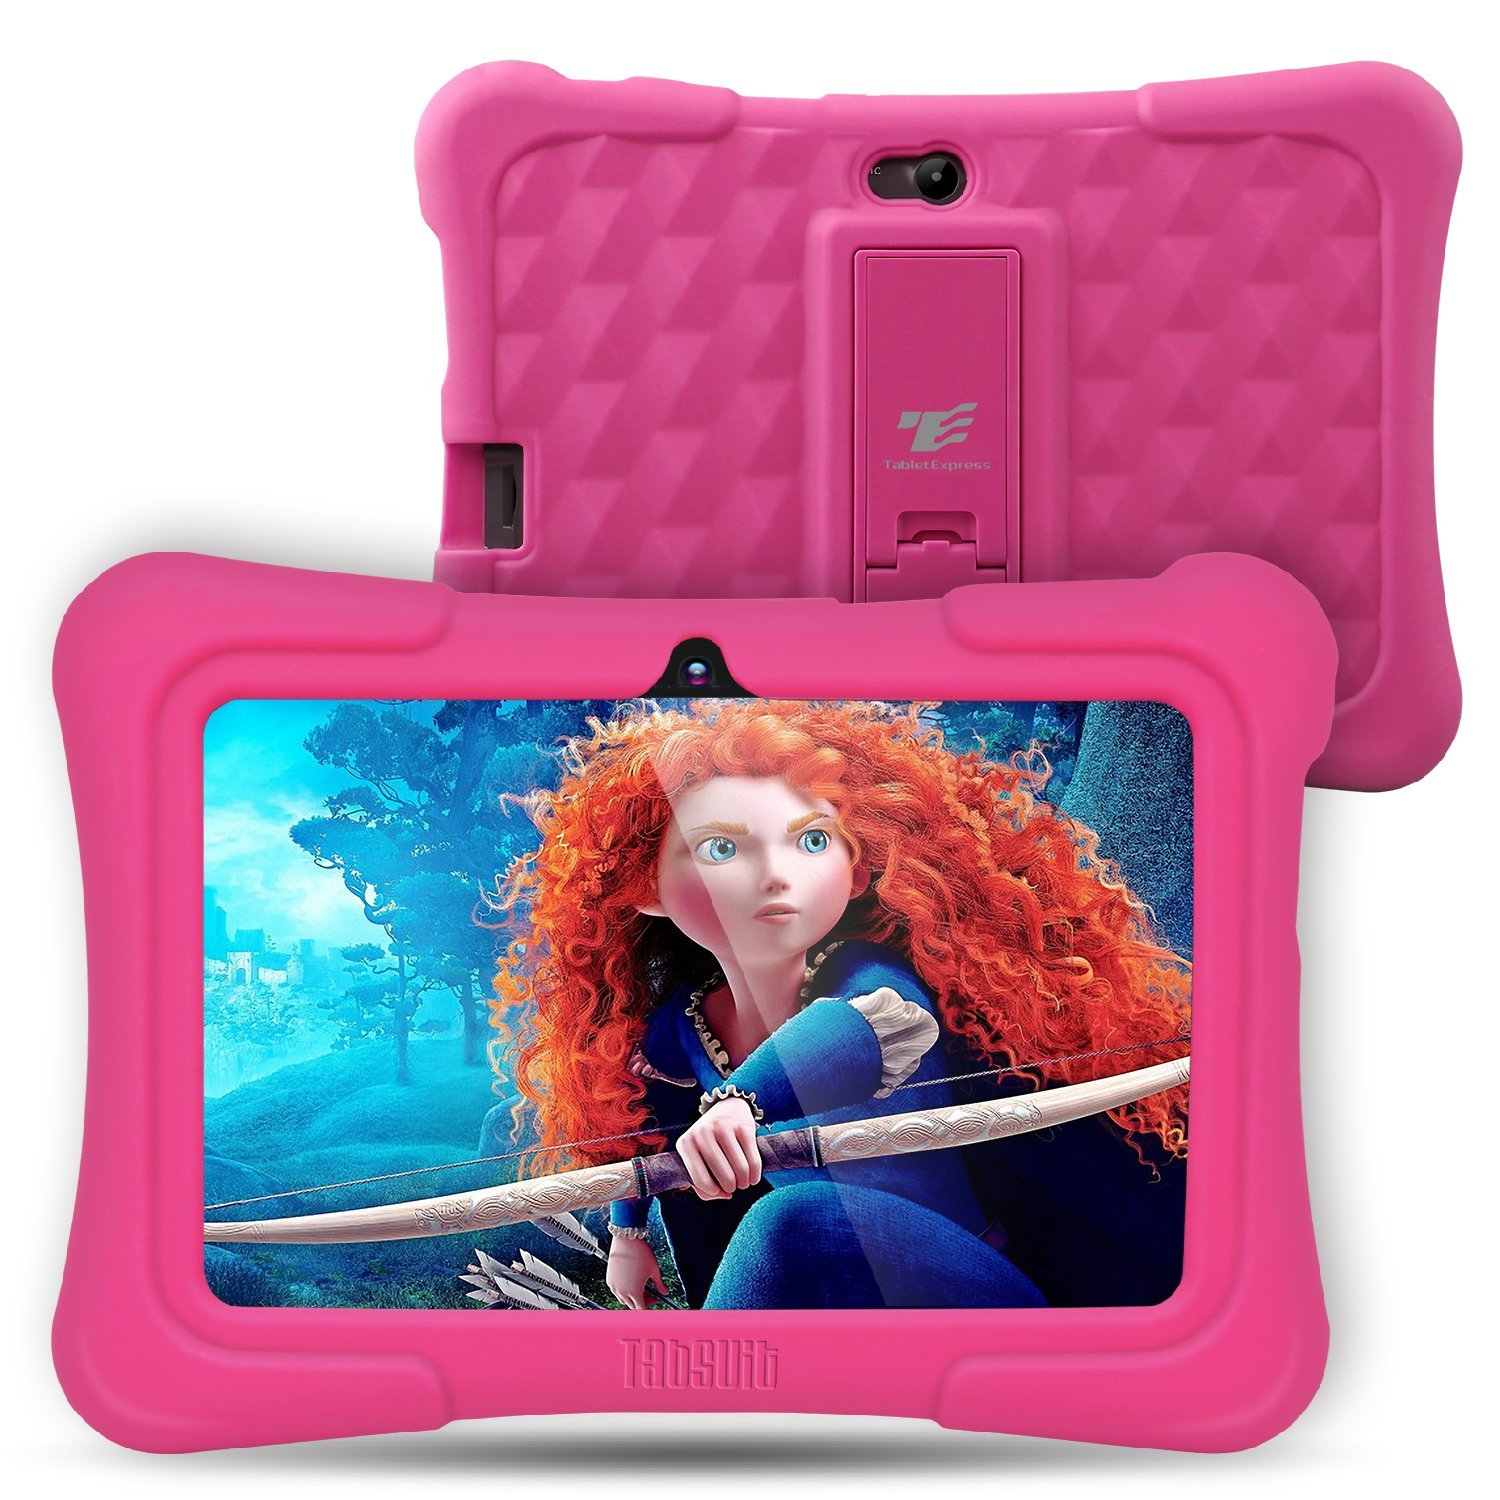 Dragon Touch Quad Core Tablet for Kids